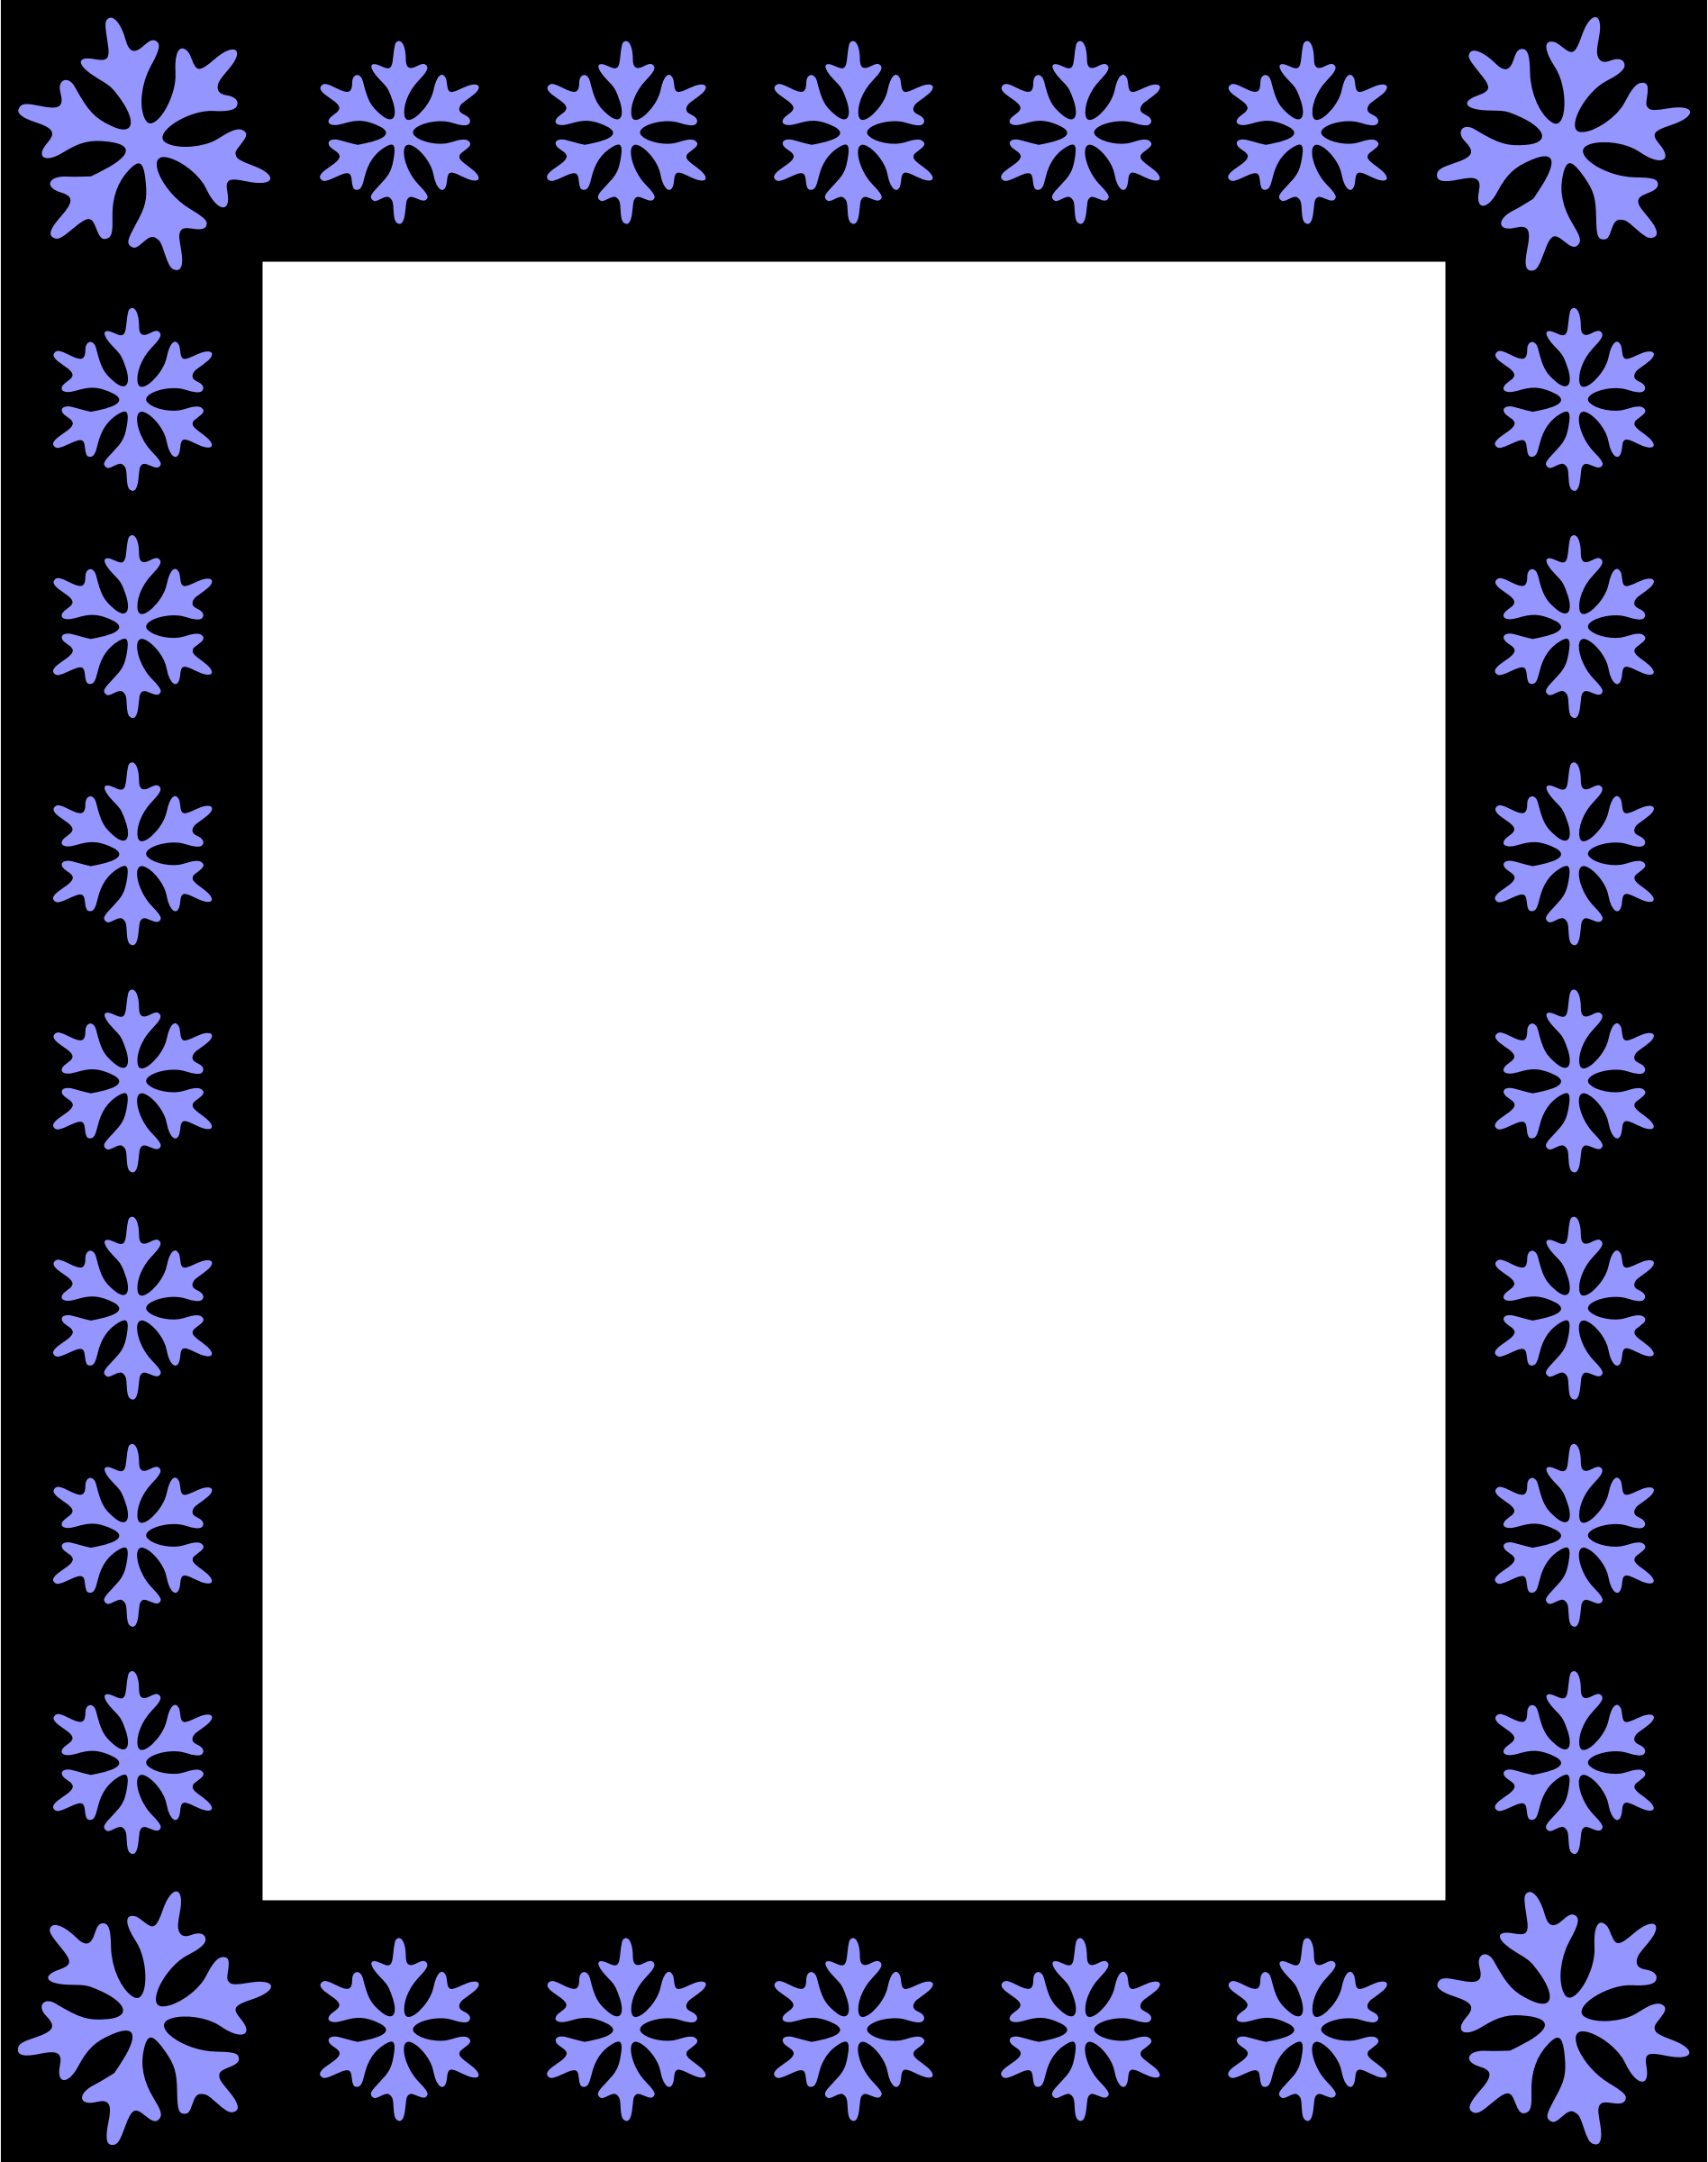 Snowflake frame clipart graphic royalty free library Clipart - Snowflake frame graphic royalty free library